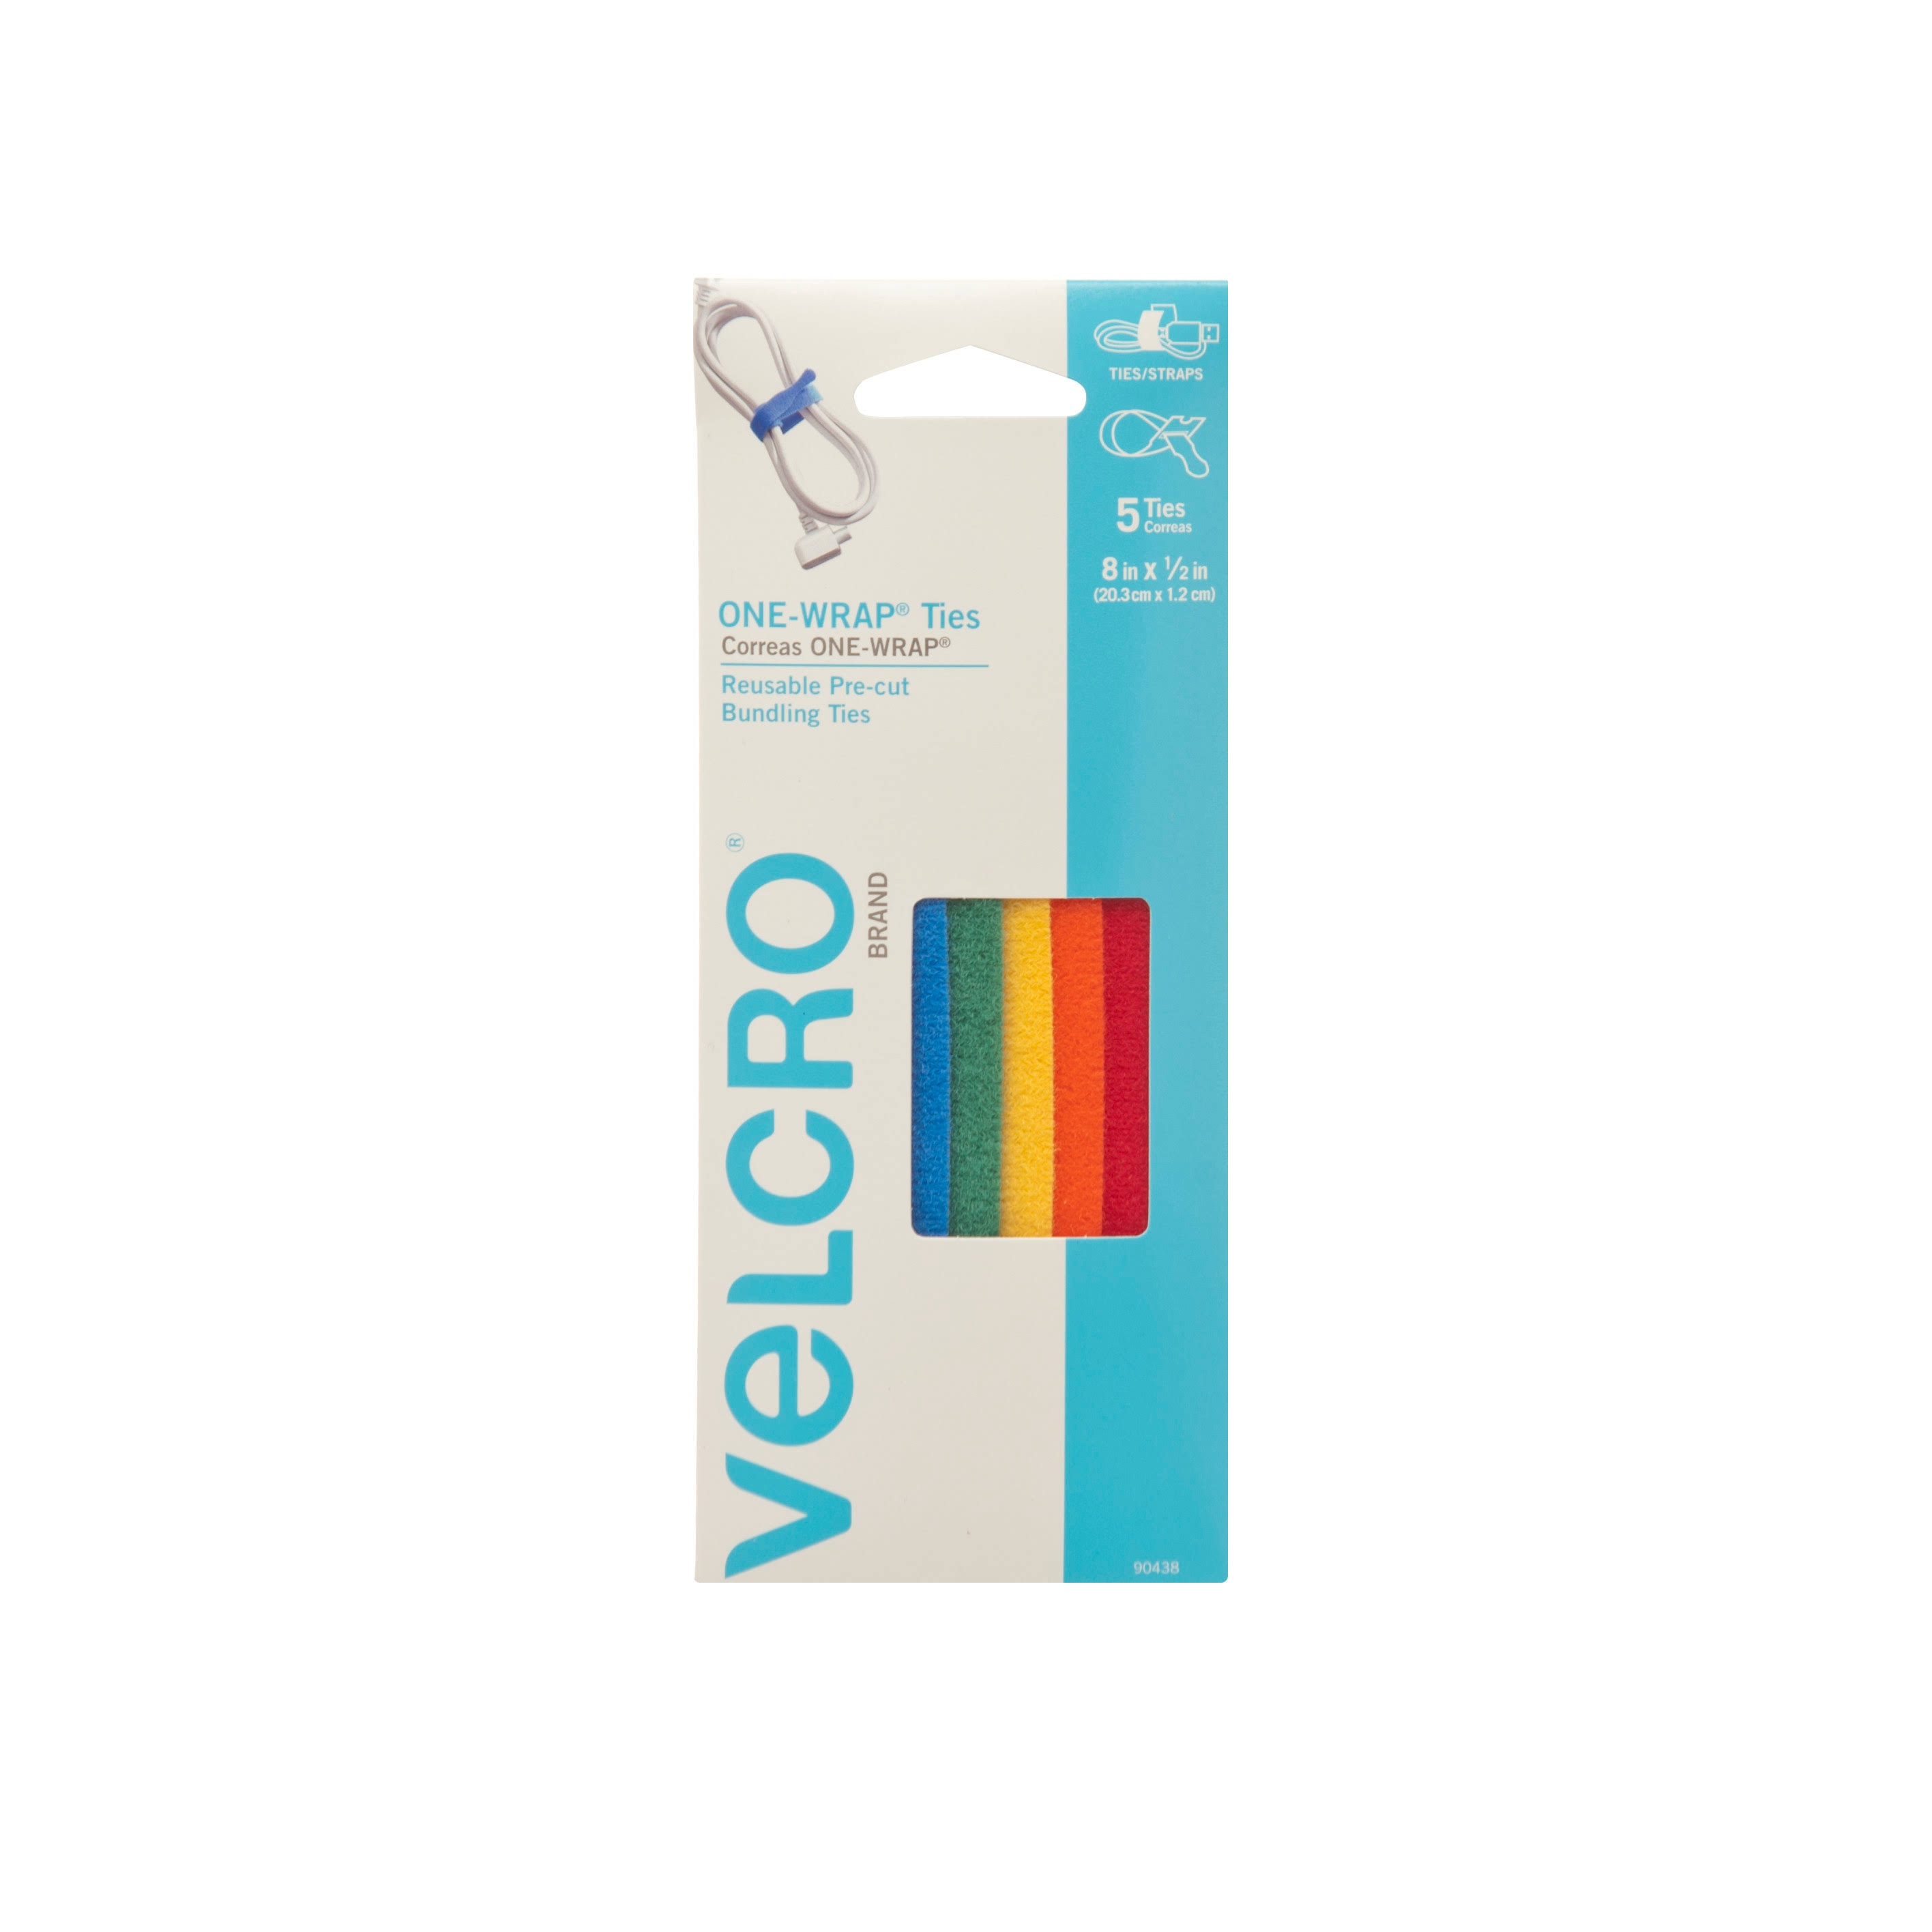 Velcro Multi-Color One-Wrap Straps - 8 x 1/2'', 5 Pack